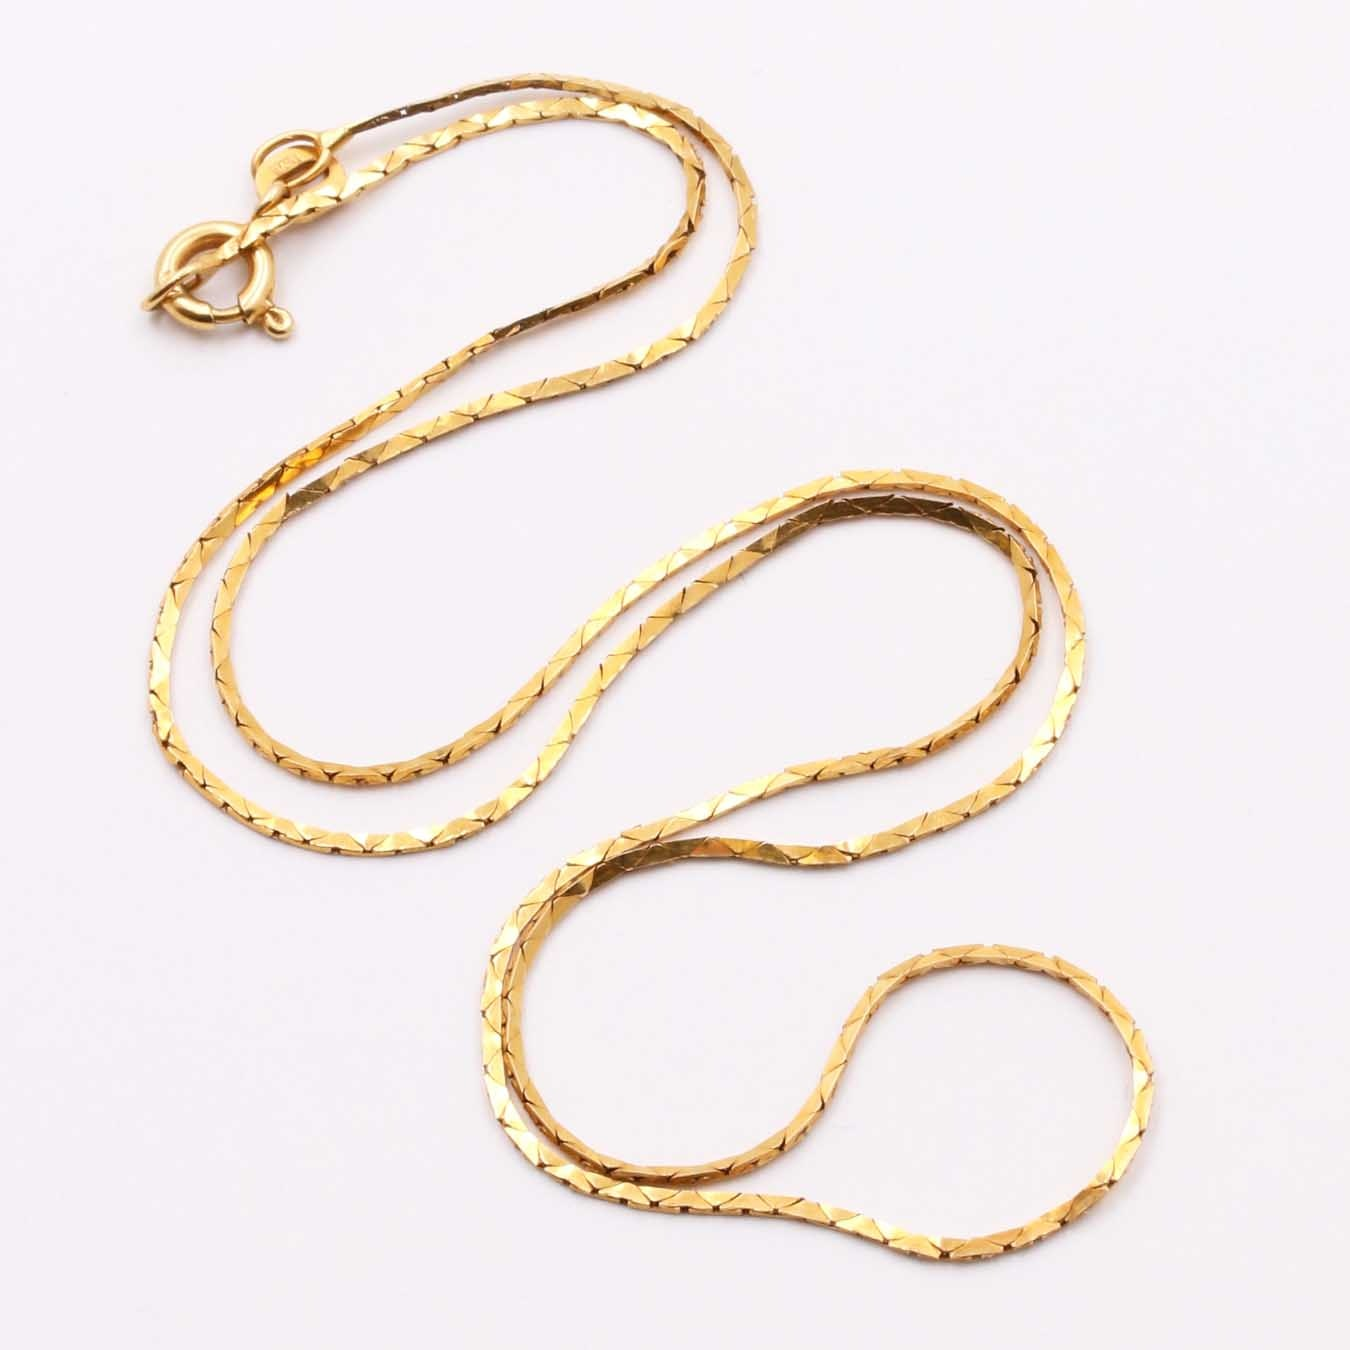 18K Yellow Gold Cobra Chain Necklace